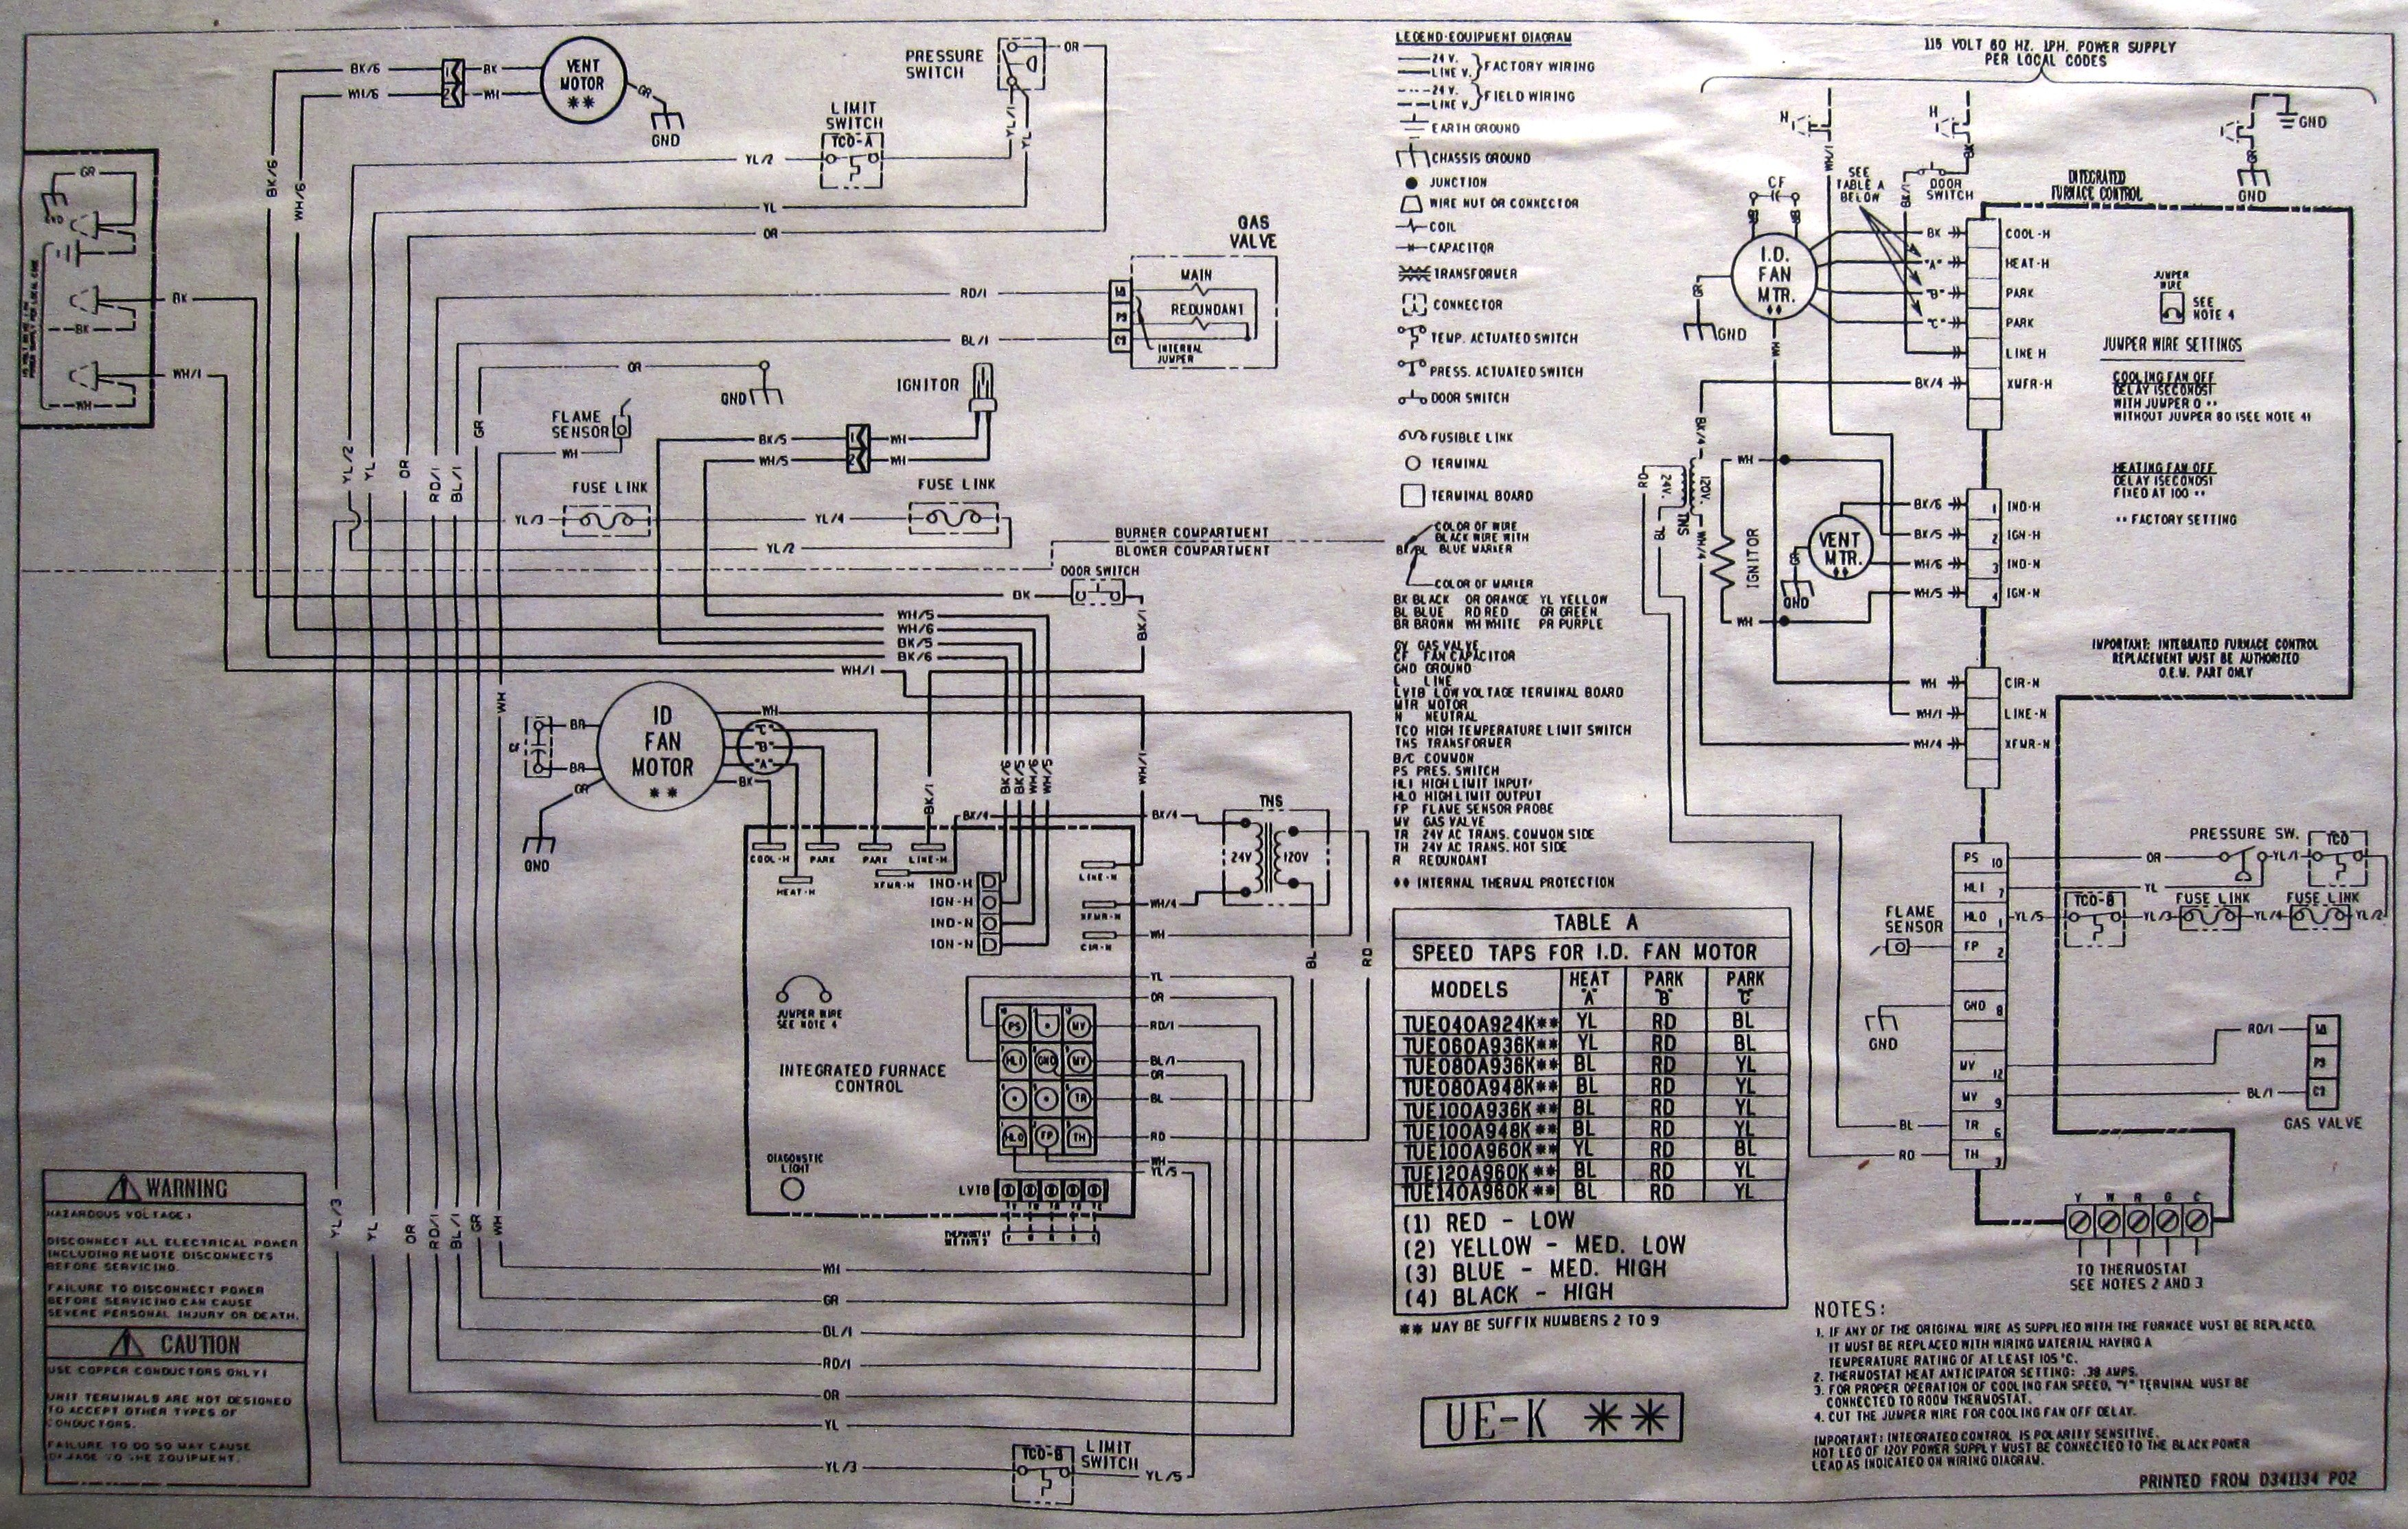 Diagram St9120c Furnace Control Board Wiring Diagram Full Version Hd Quality Wiring Diagram Doorbellwiring Lexanesirac Fr